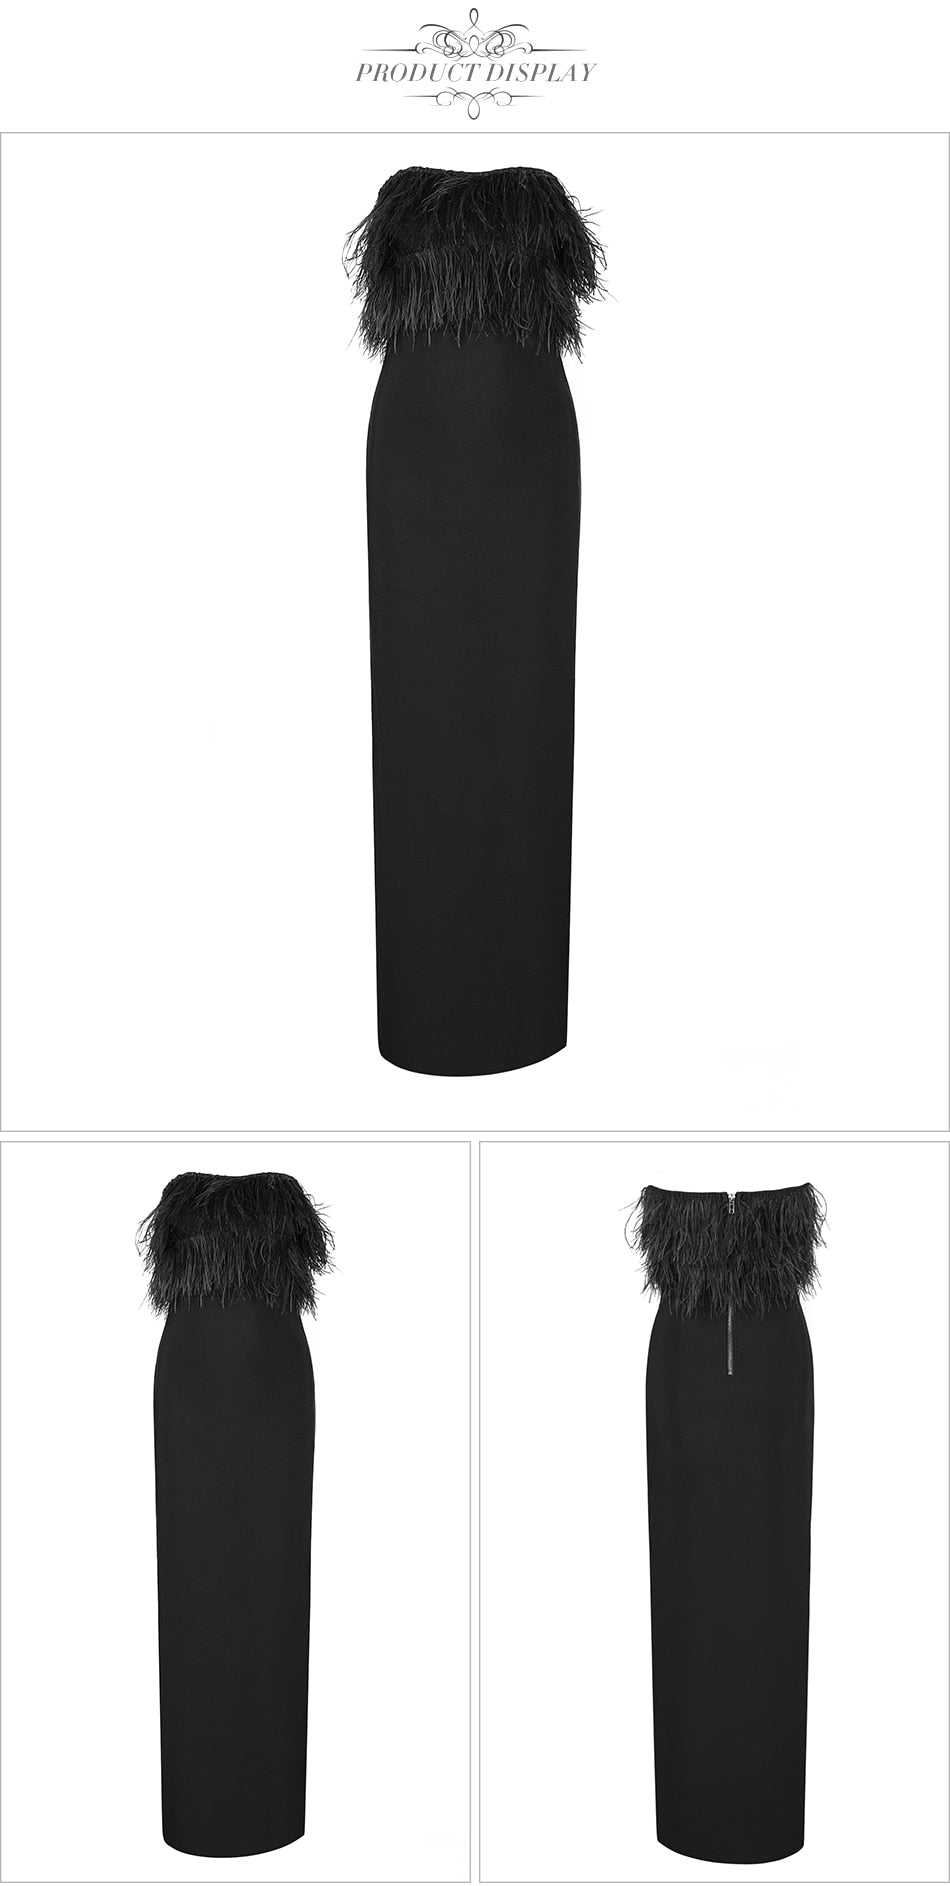 Strapless Ostrich Feathers, High Slit Knit Luxury Long Maxi Gown